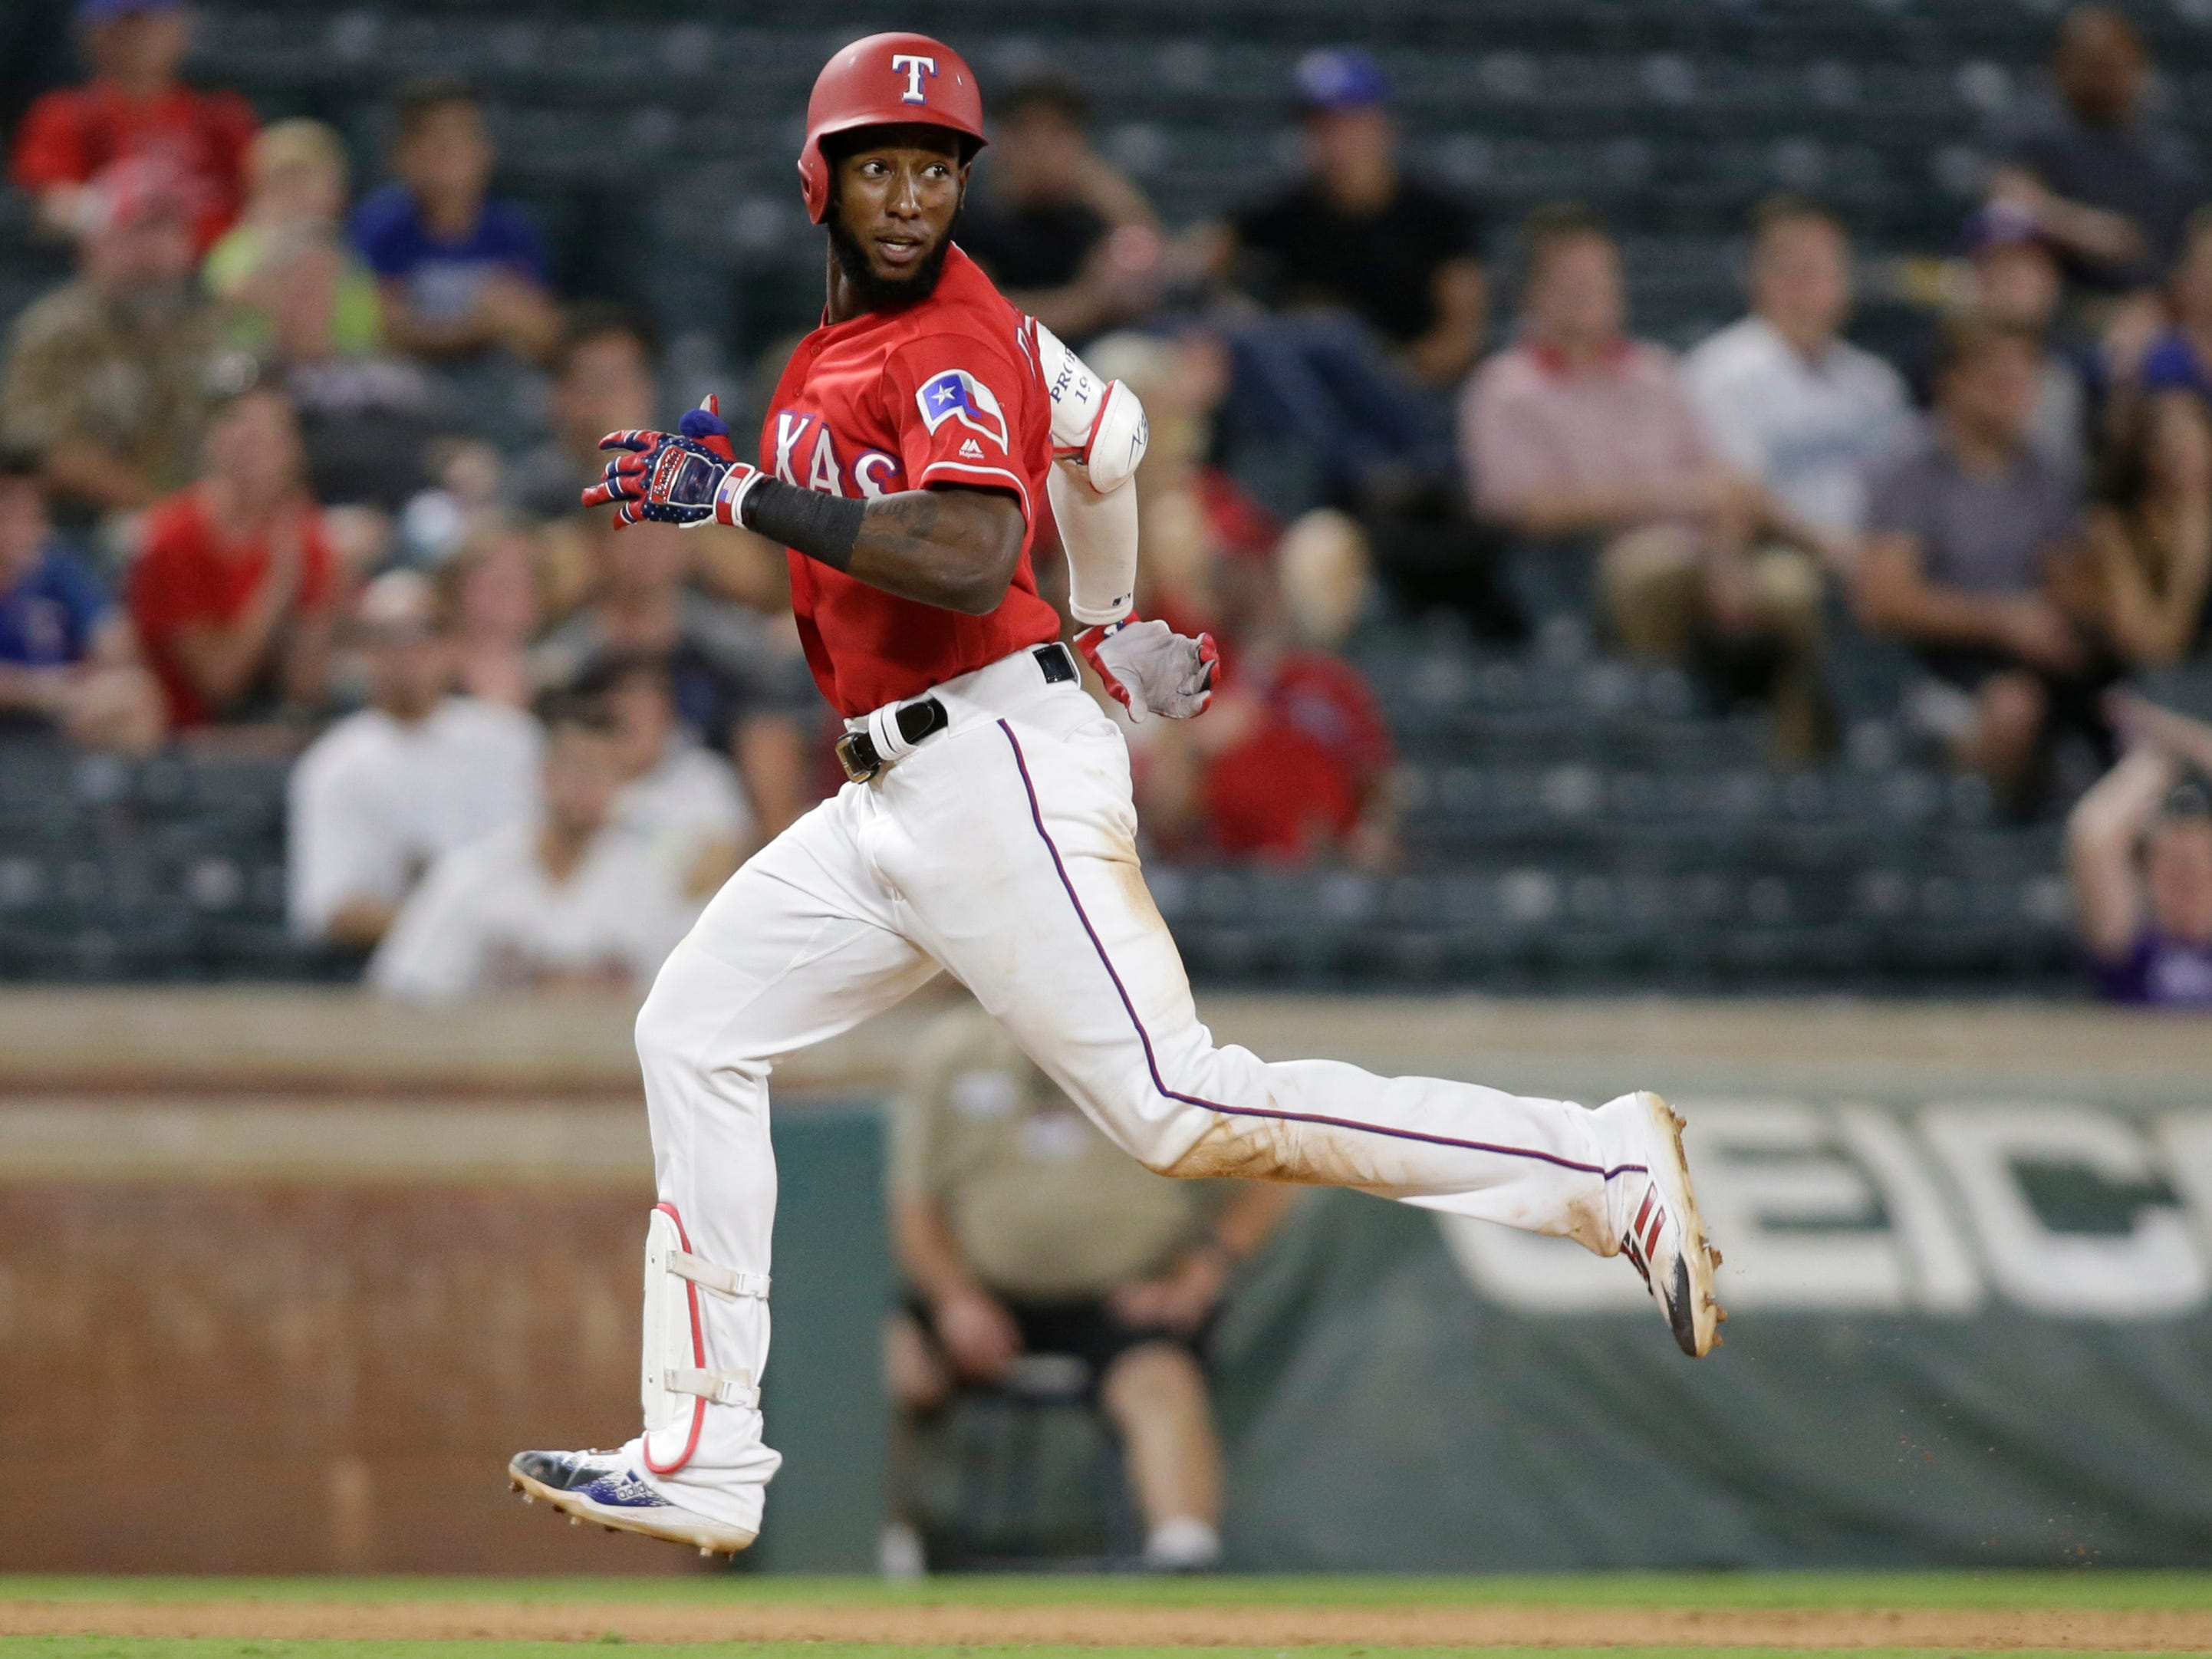 Aug 14, 2018: Texas Rangers third baseman Jurickson Profar (19) runs to third base with a triple in the ninth inning against the Arizona Diamondbacks at Globe Life Park in Arlington.